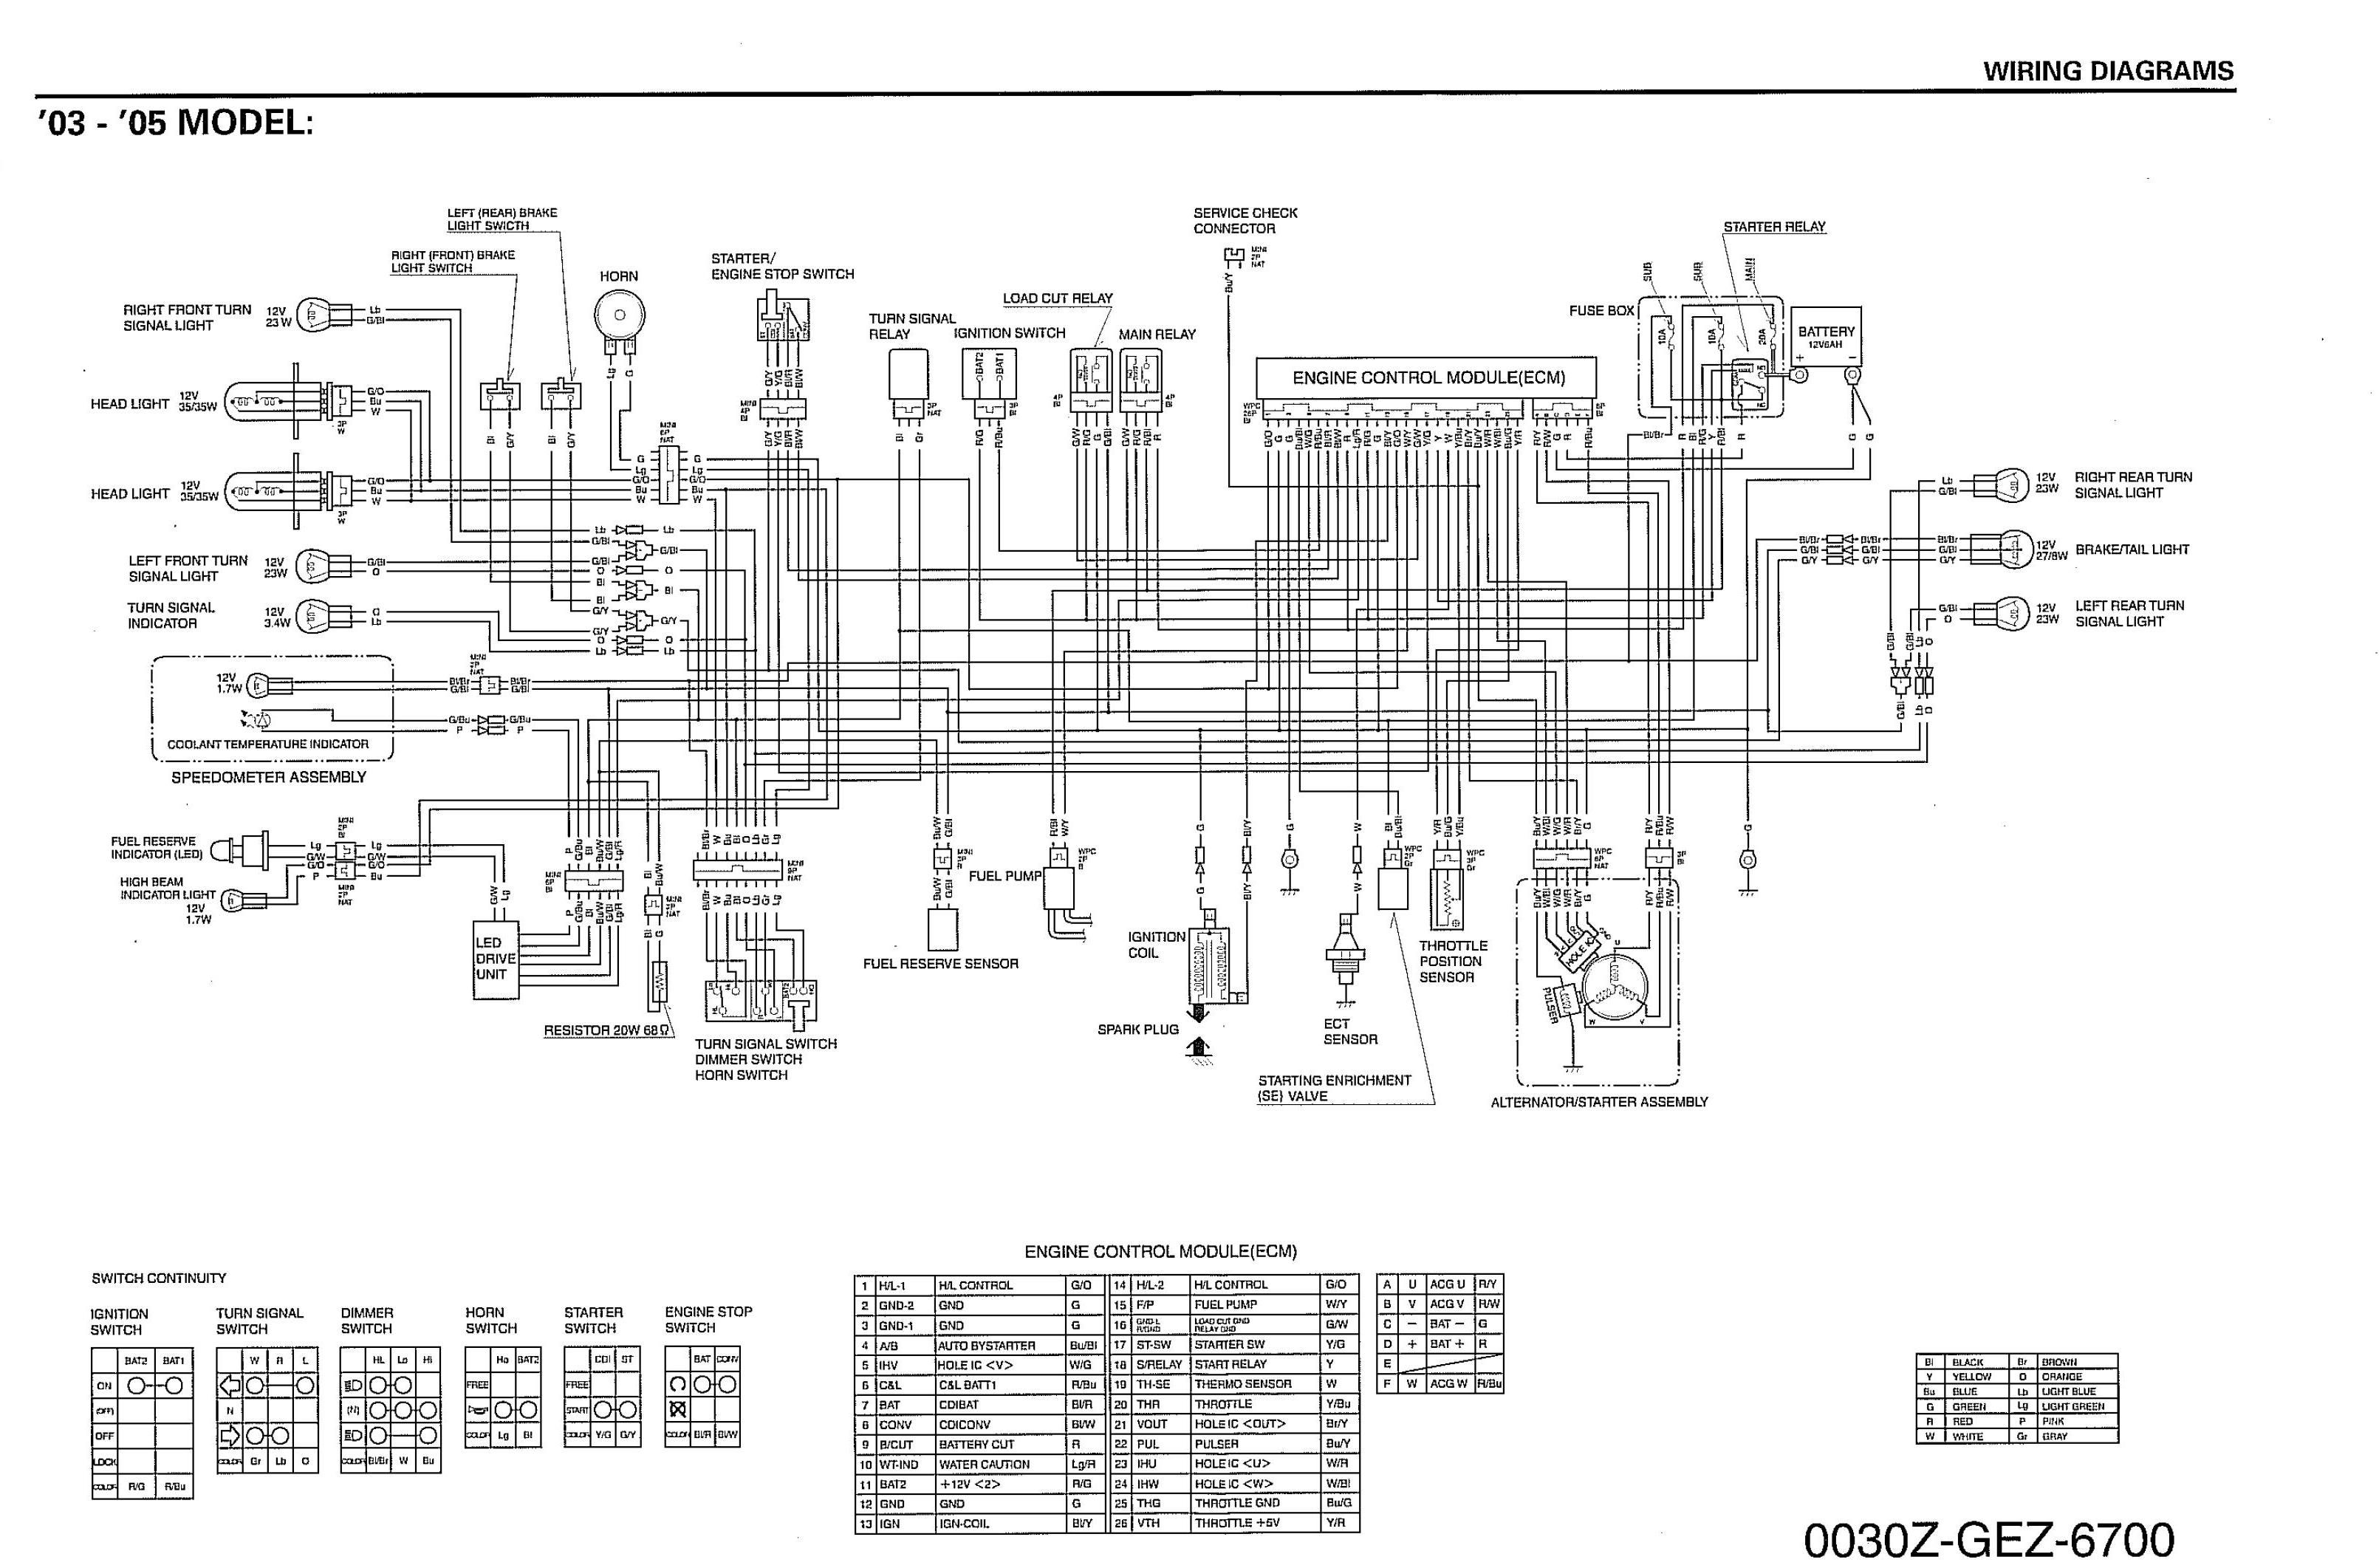 Honda Civic Wiring Diagram